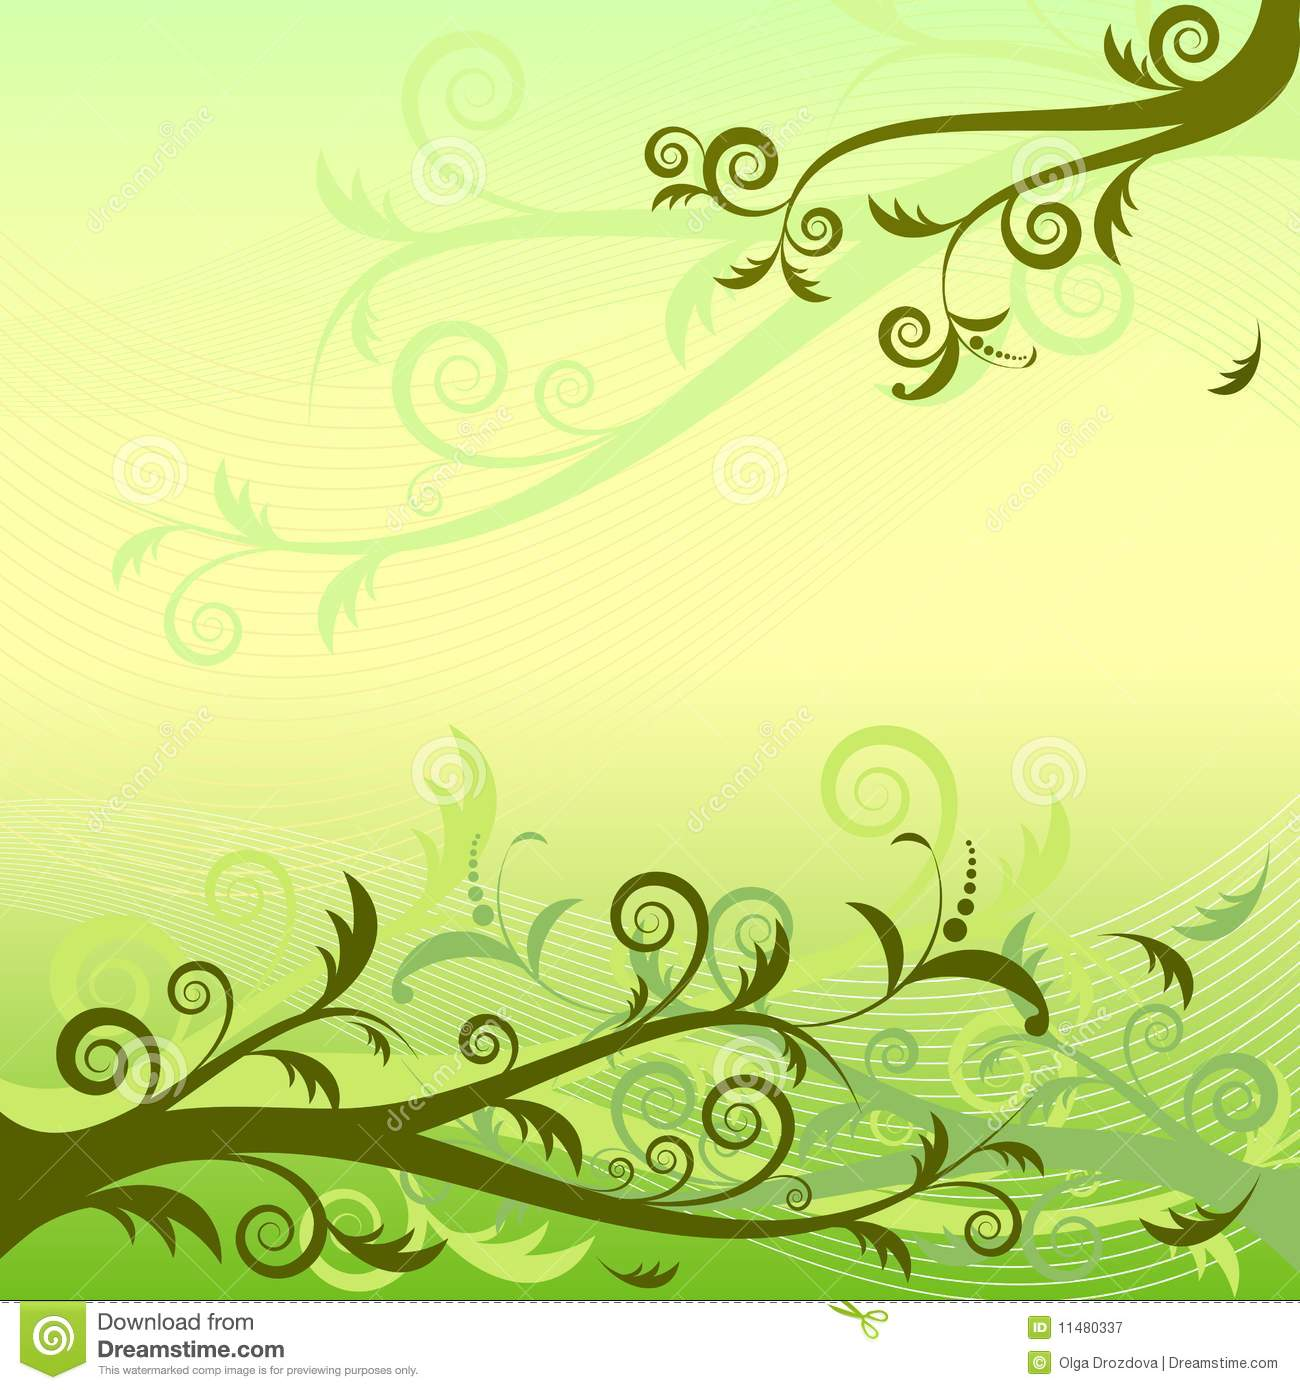 Cute Bordered Pastel Flower Wallpaper Green Floral Background Vector Royalty Free Stock